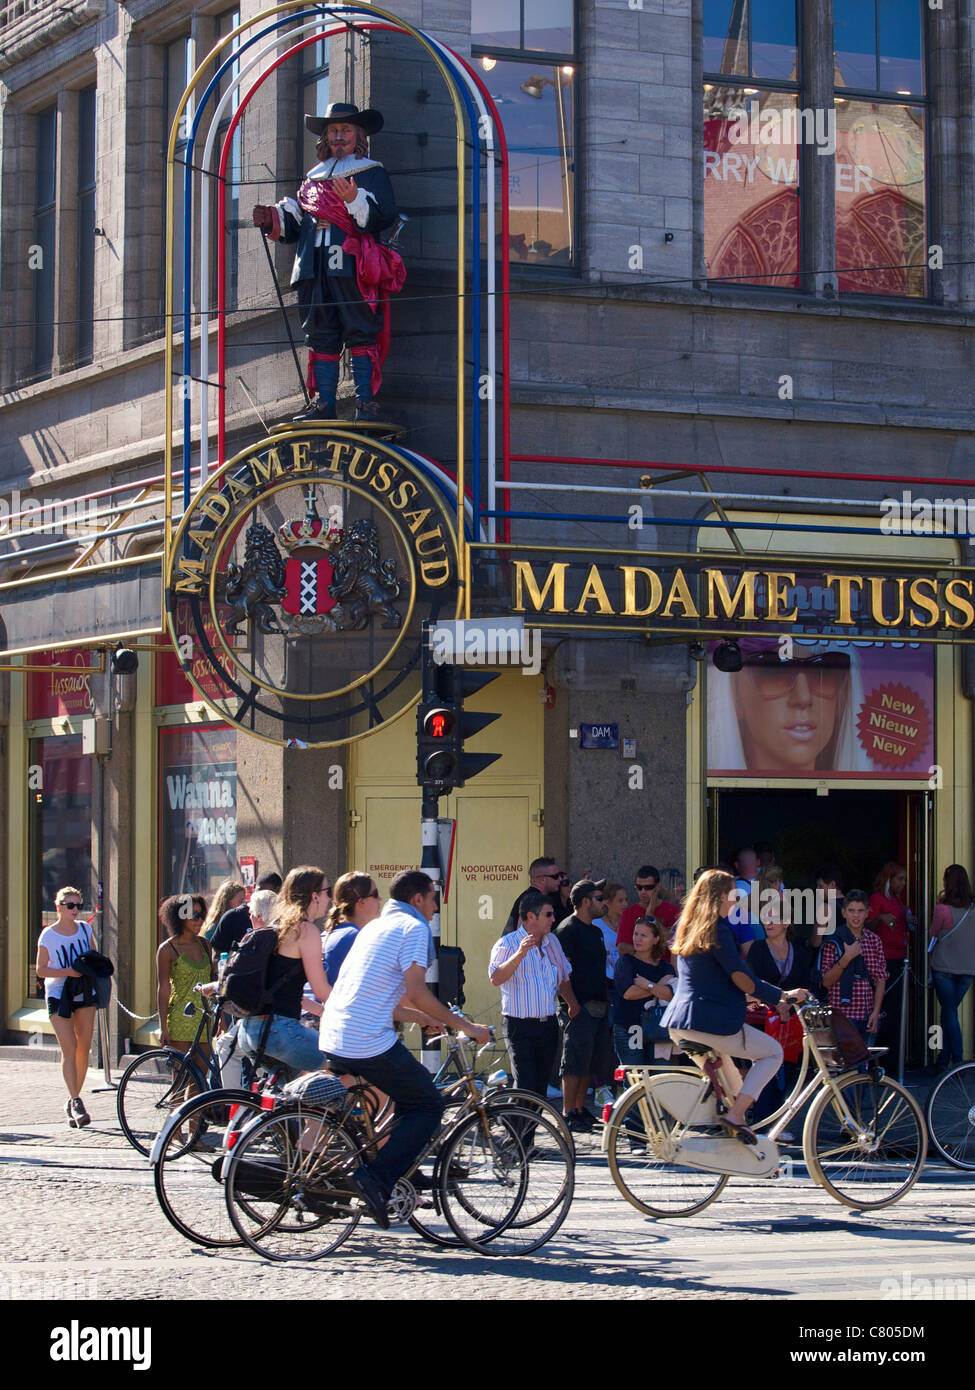 Madame Tussaud on Dam square, Amsterdam, the Netherlands, with many tourists. - Stock Image